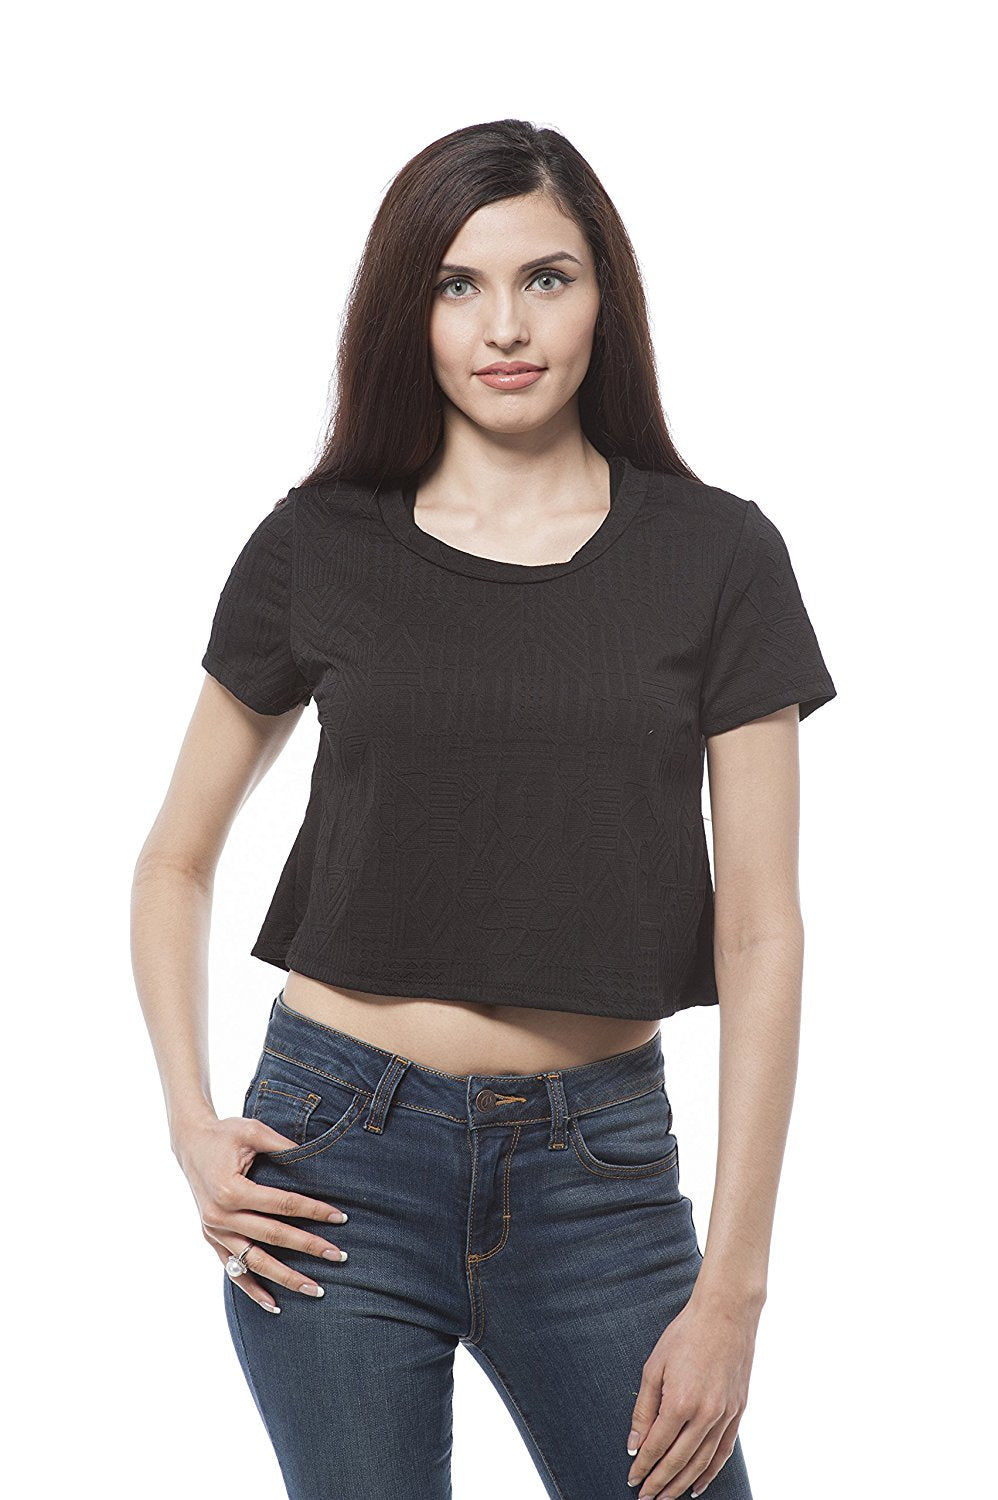 Short Sleeve Crop top with designs